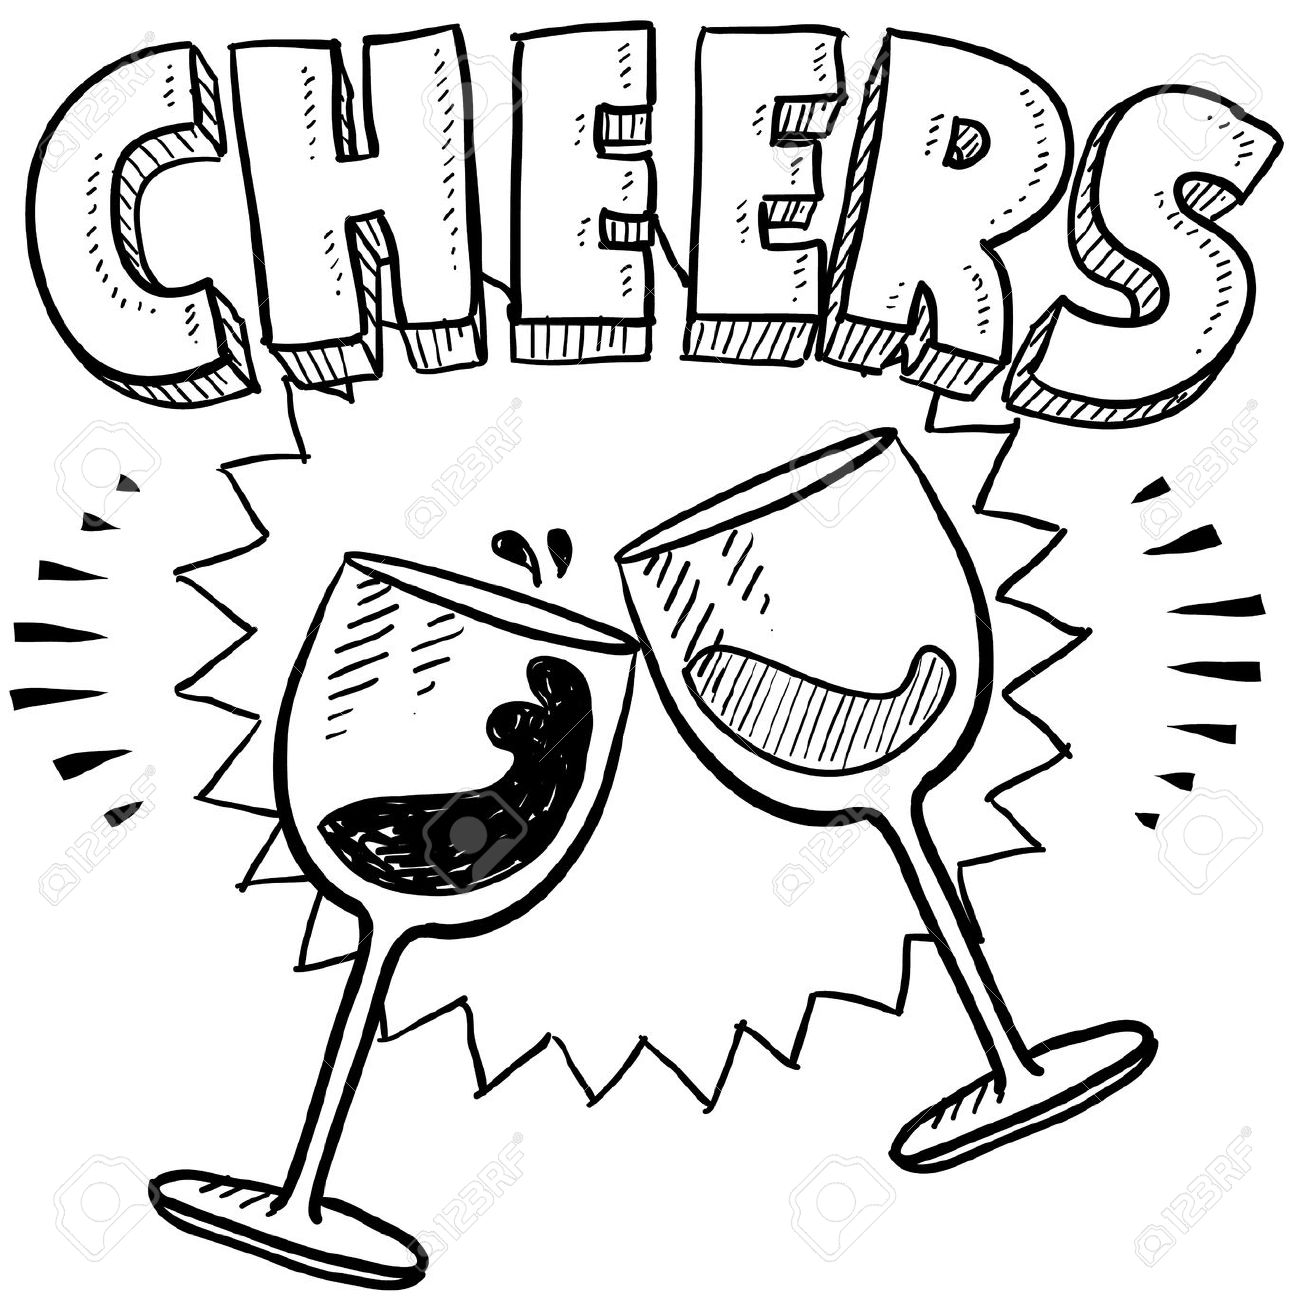 bd27c92784c Doodle style Cheers celebration illustration in vector format Includes text  and wine glasses Stock Illustration -